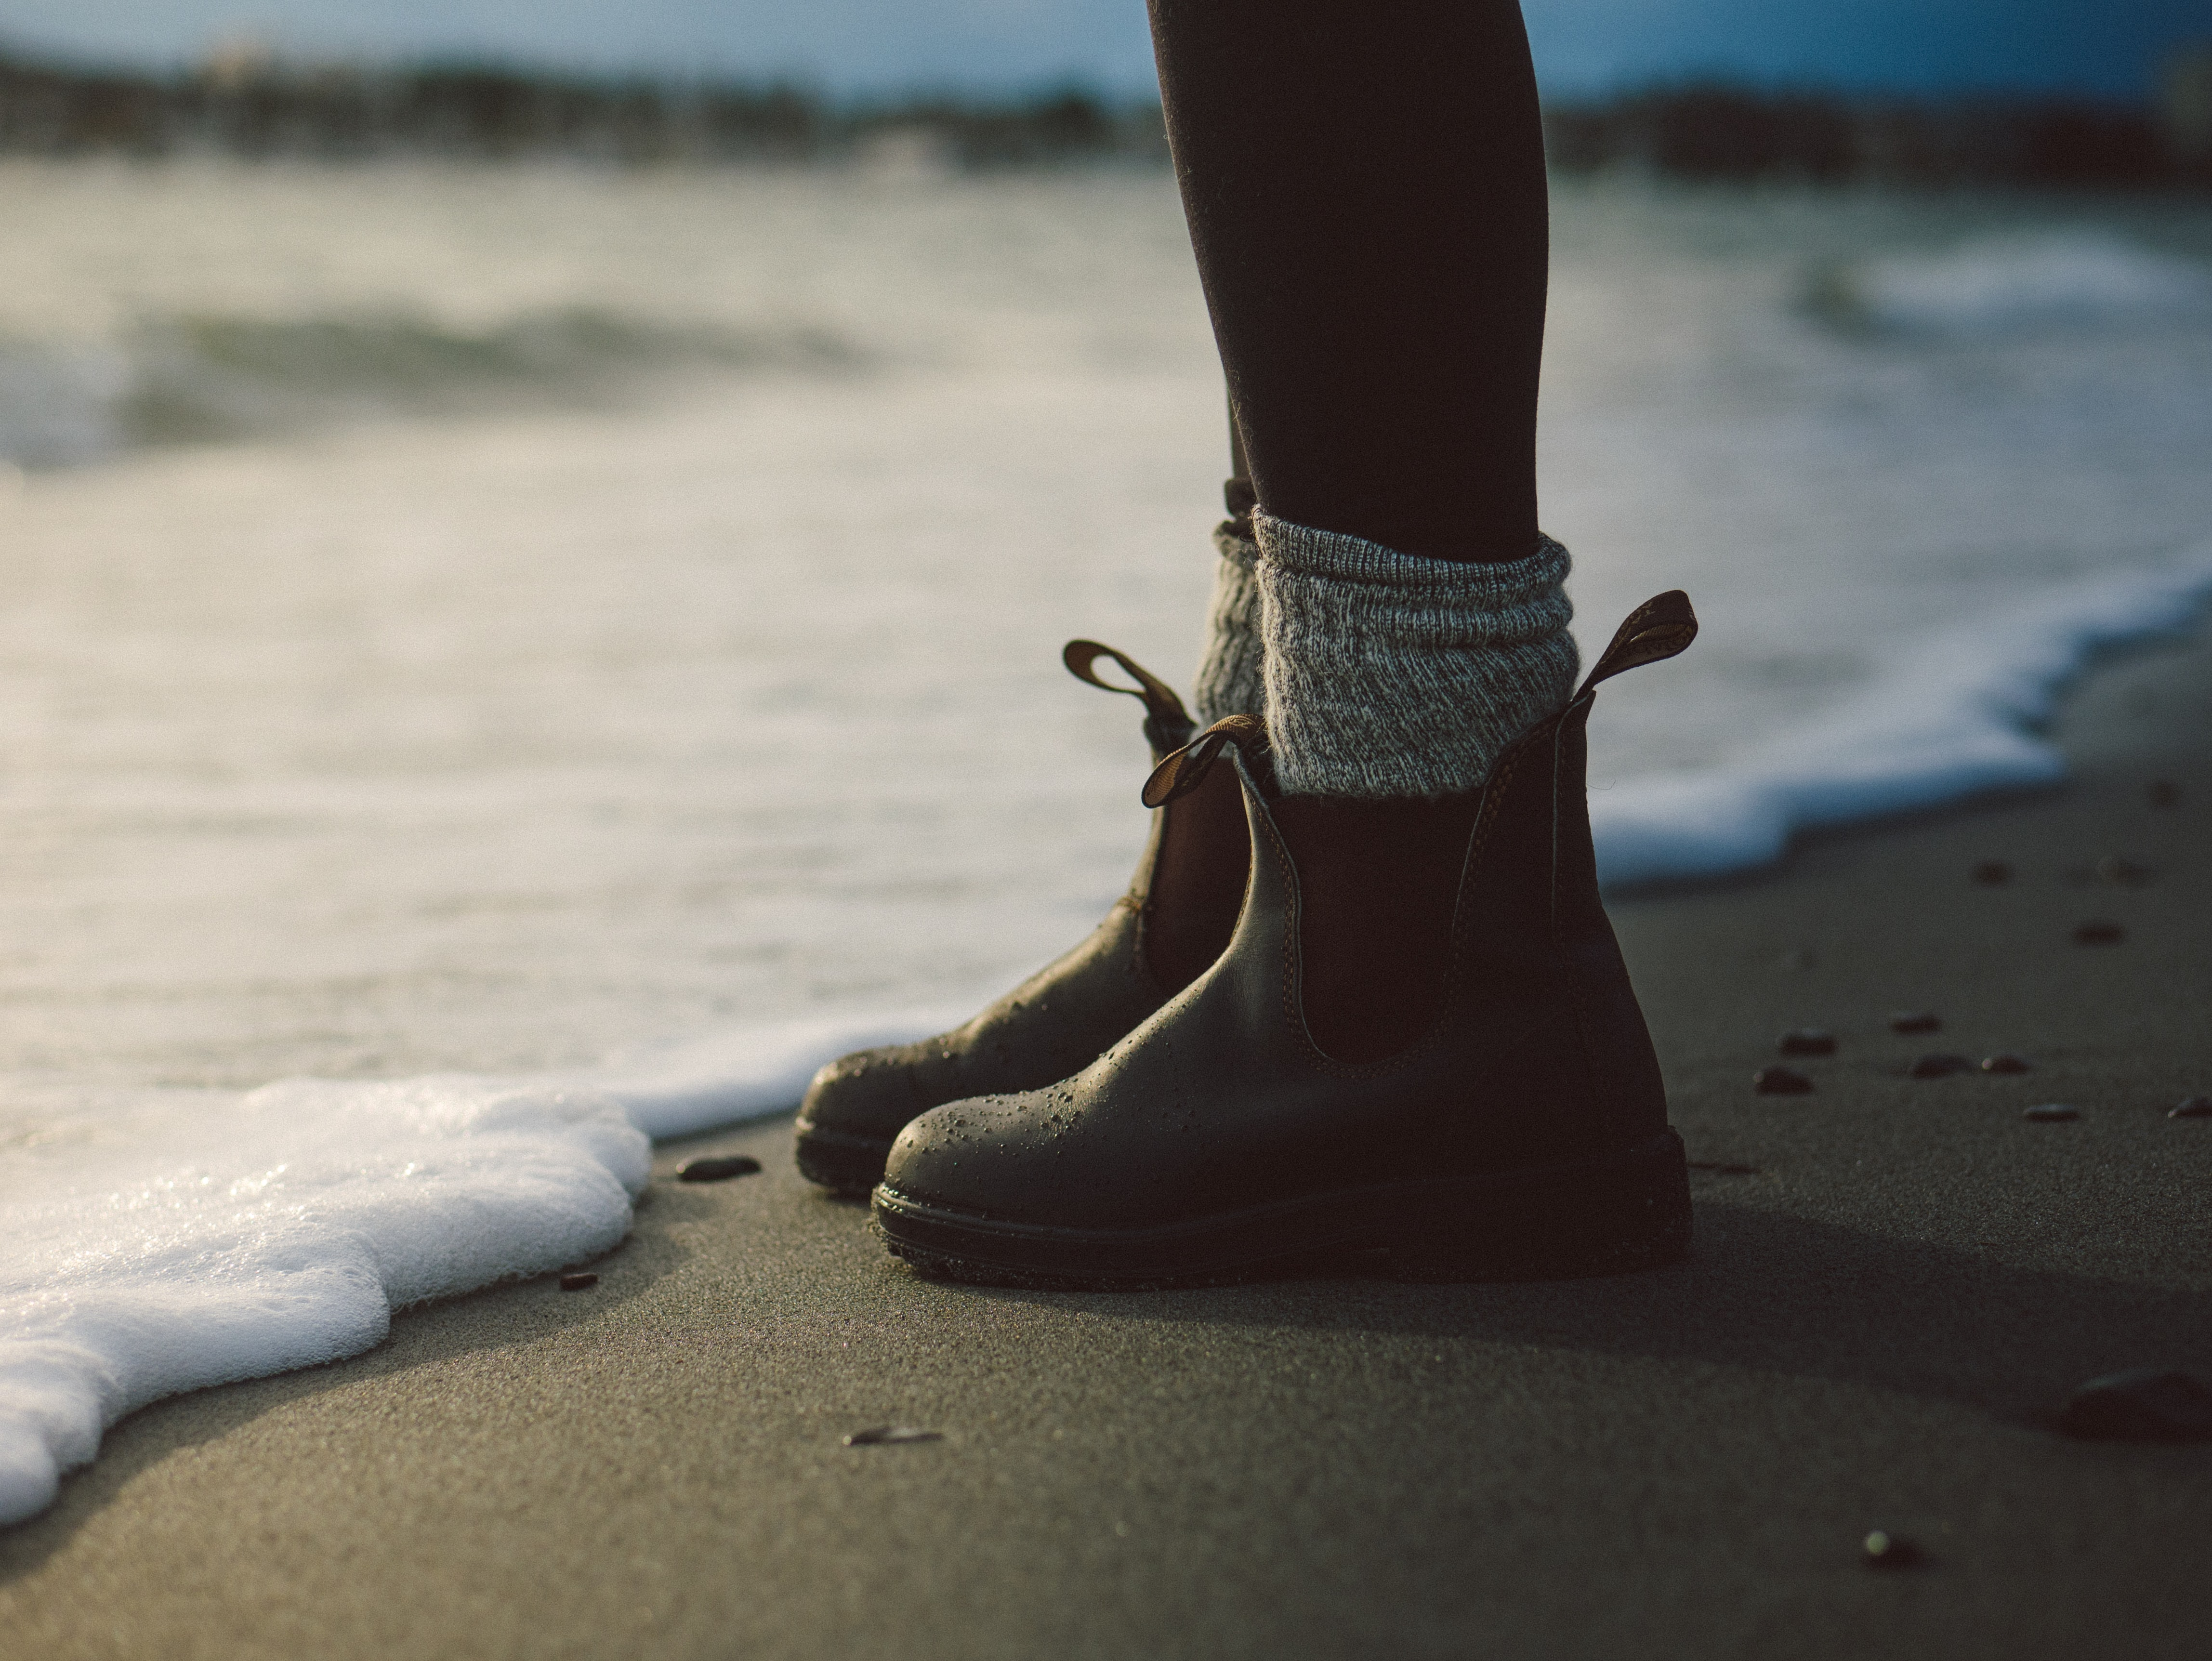 A person in boots stands on the sand near the shore as the water's foam movies in